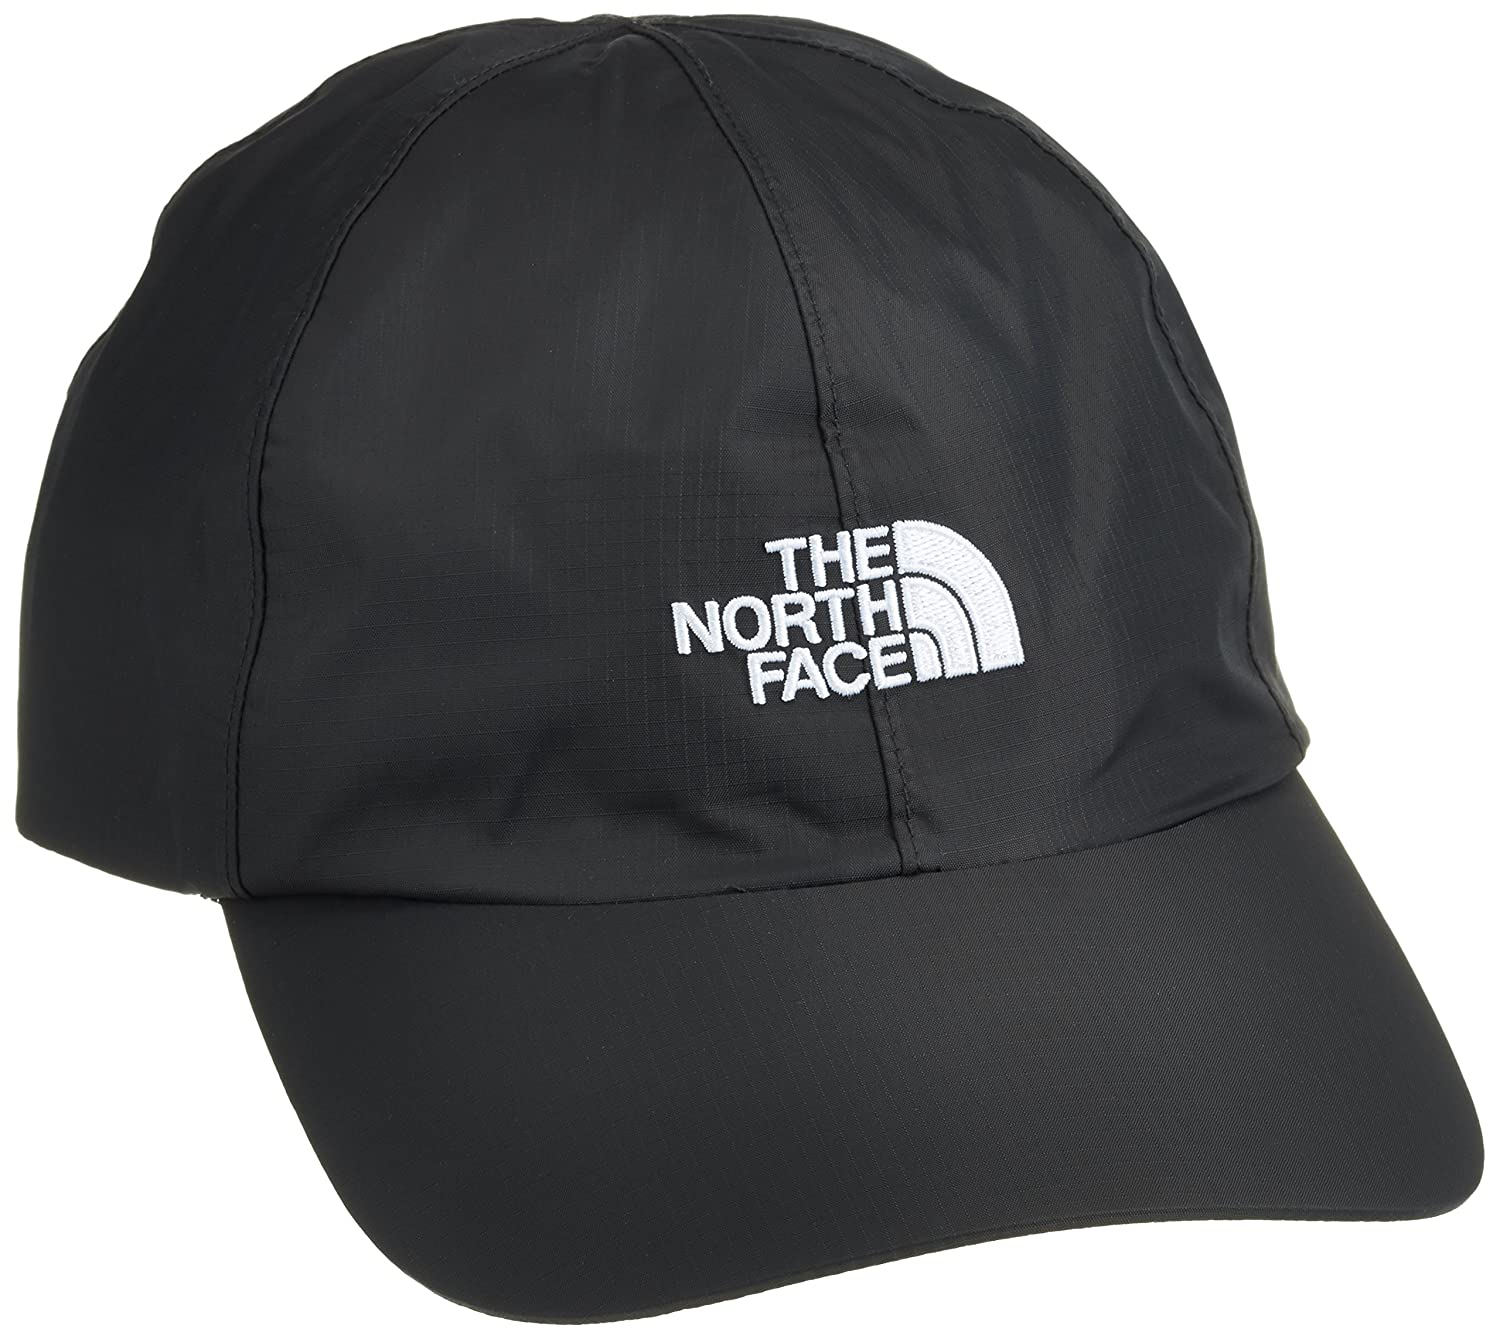 The North Face Dryvent Hat Outdoor Hat Black/Tfn Black T0CG0HJK3. OS